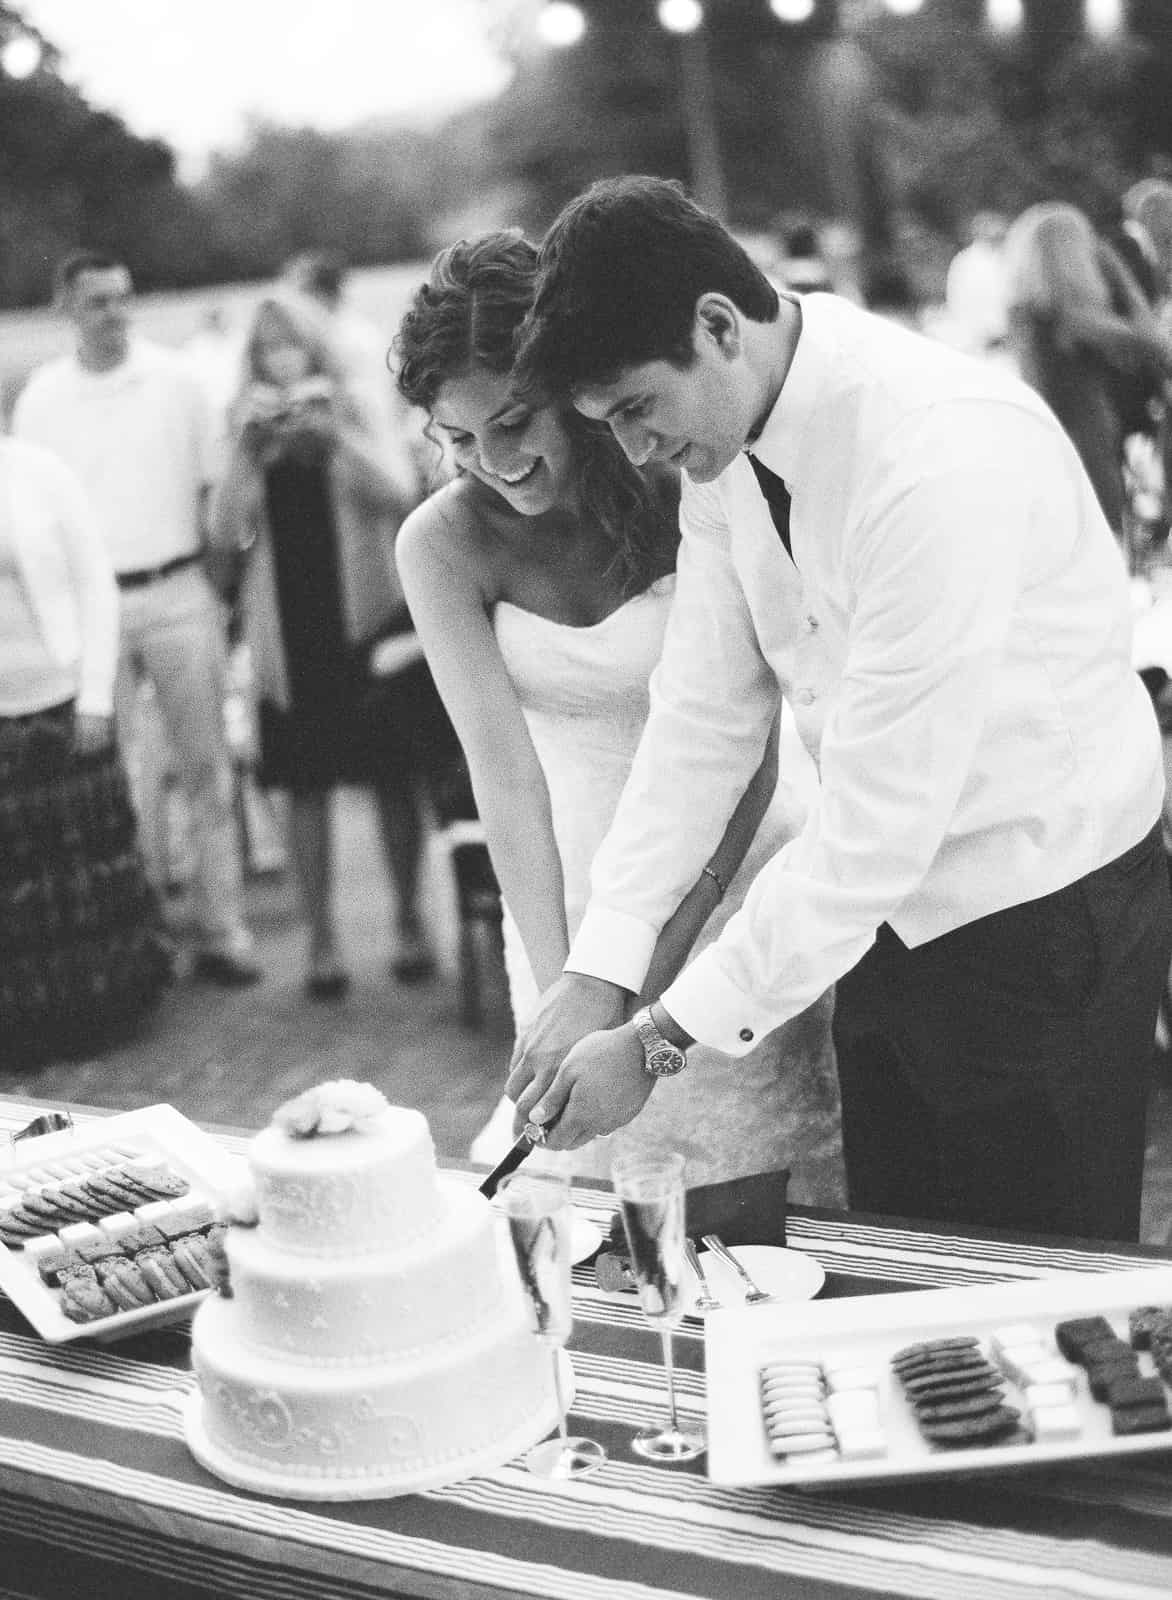 cutting cake table